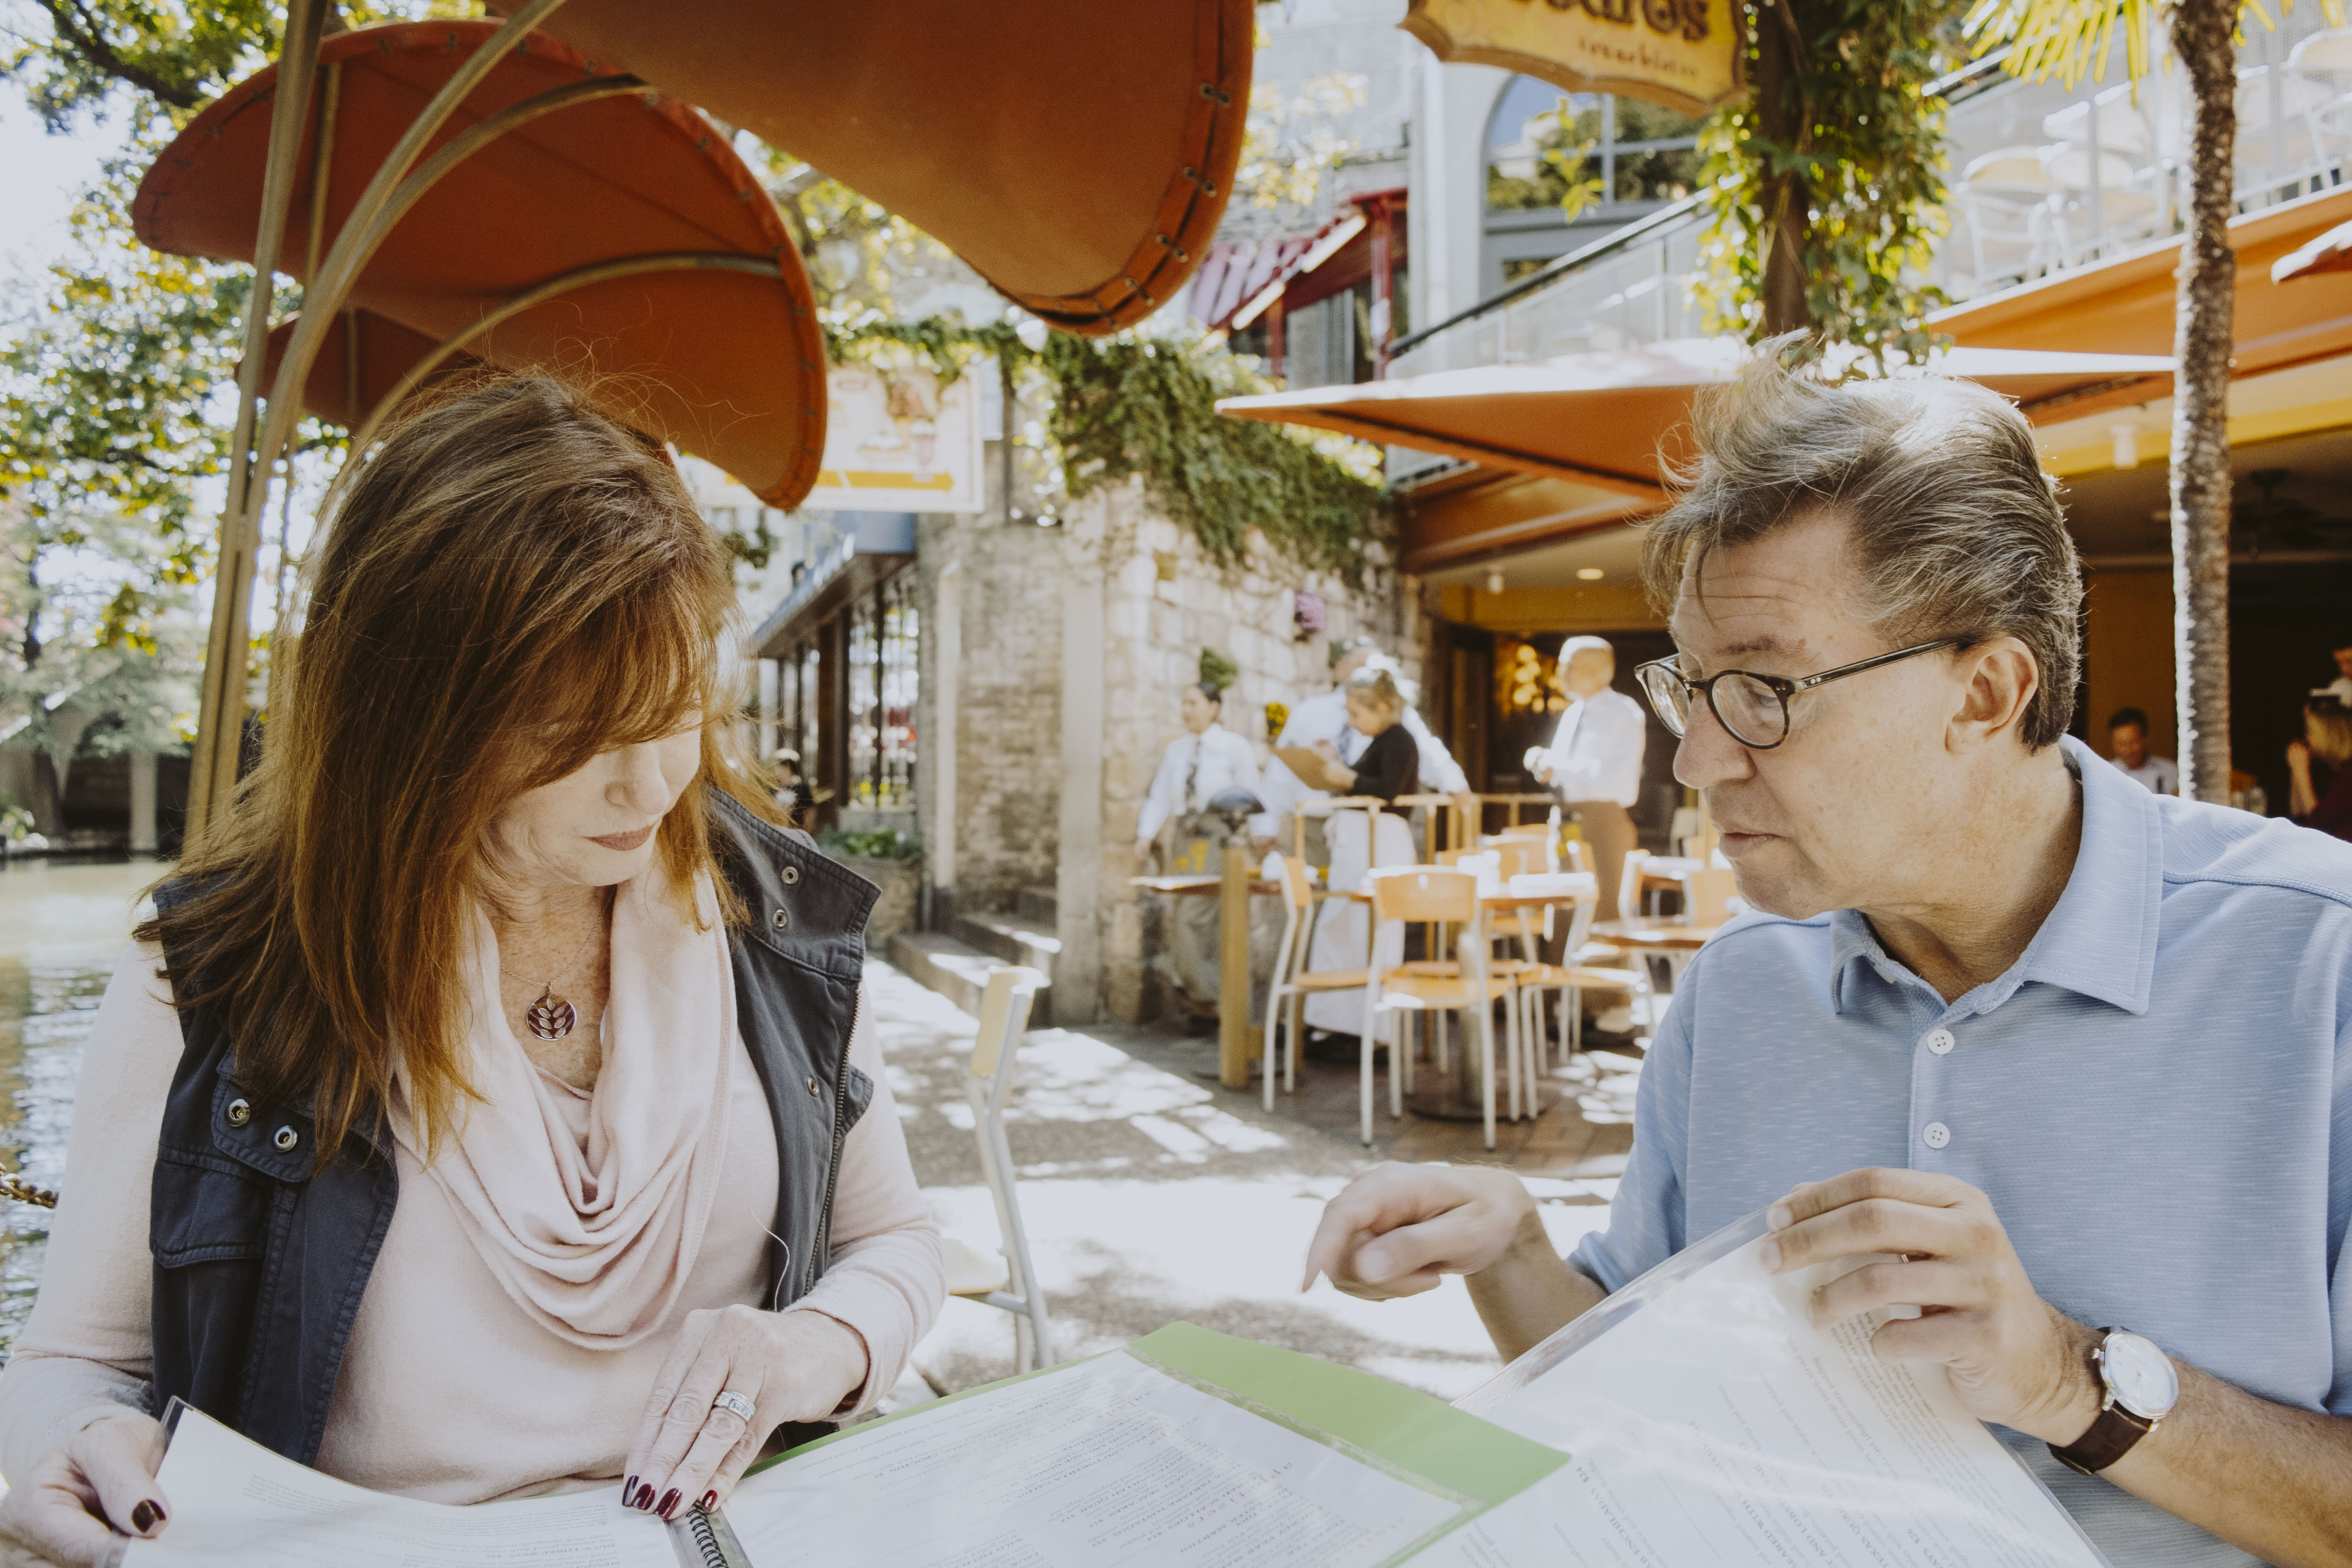 man and woman sitting down near table while reading outside cafe during daytime